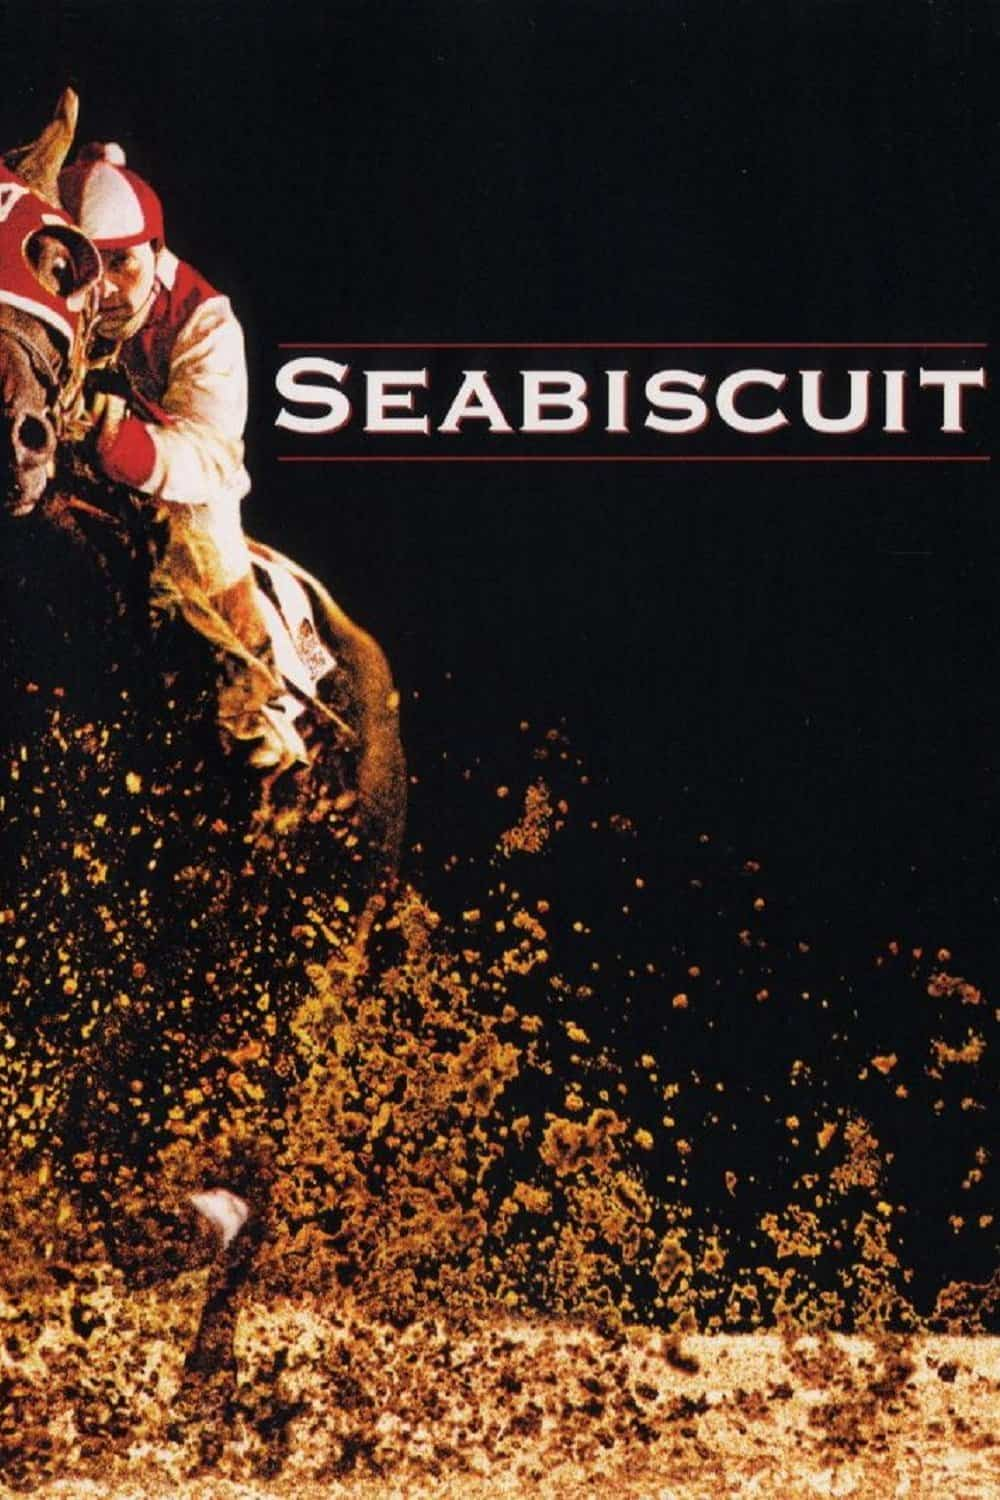 Seabiscuit, 2003